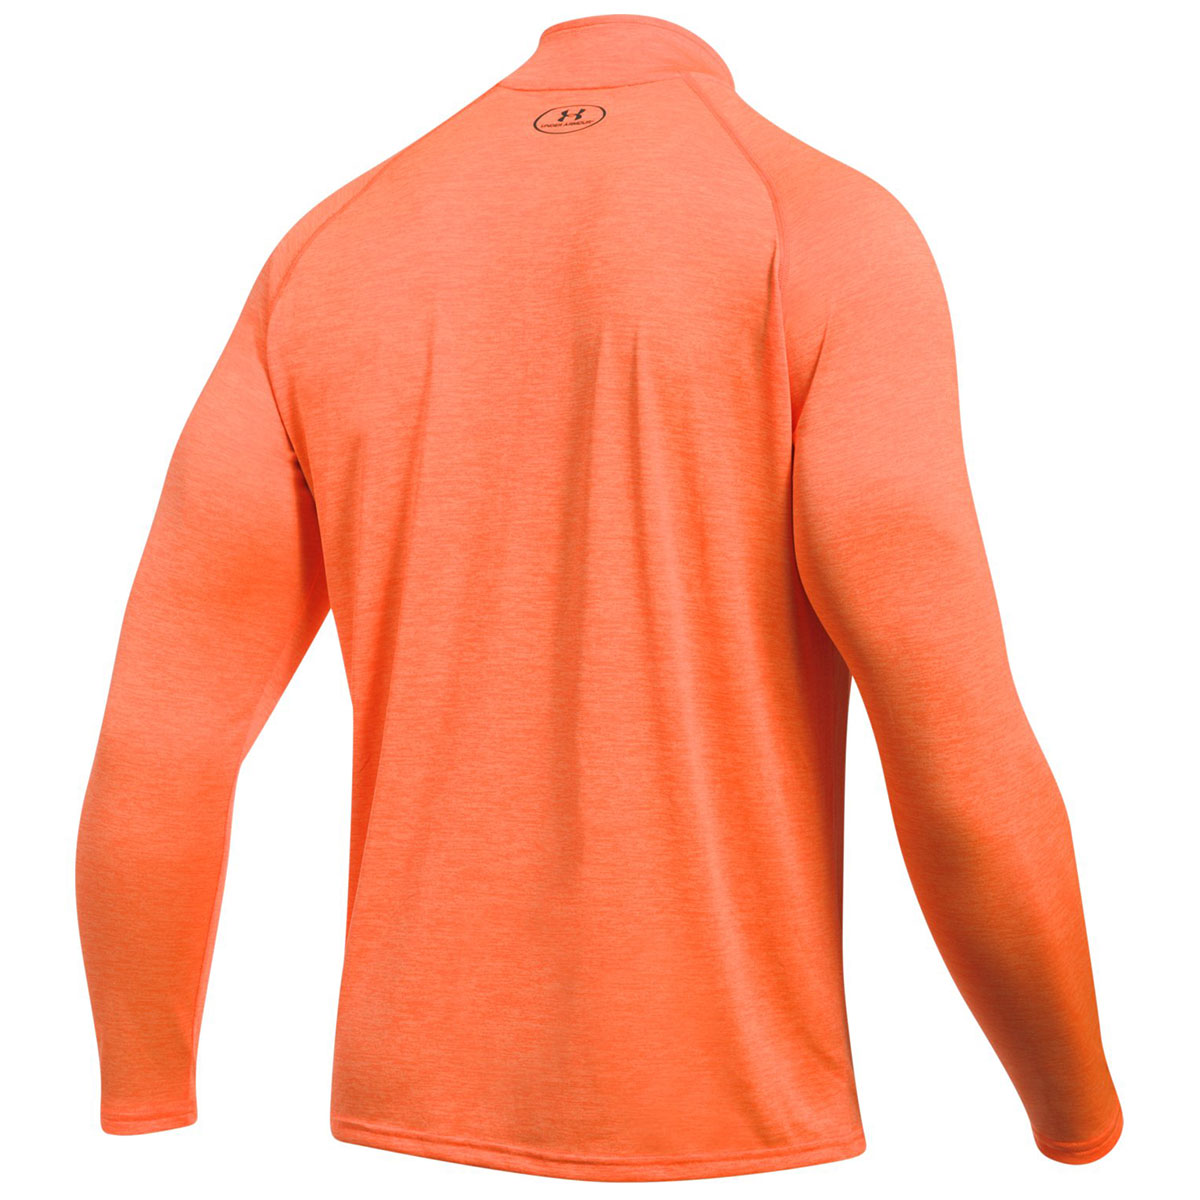 Under-Armour-Mens-UA-Tech-1-4-Zip-Long-Sleeve-Top-Workout-Layer-27-OFF-RRP thumbnail 57